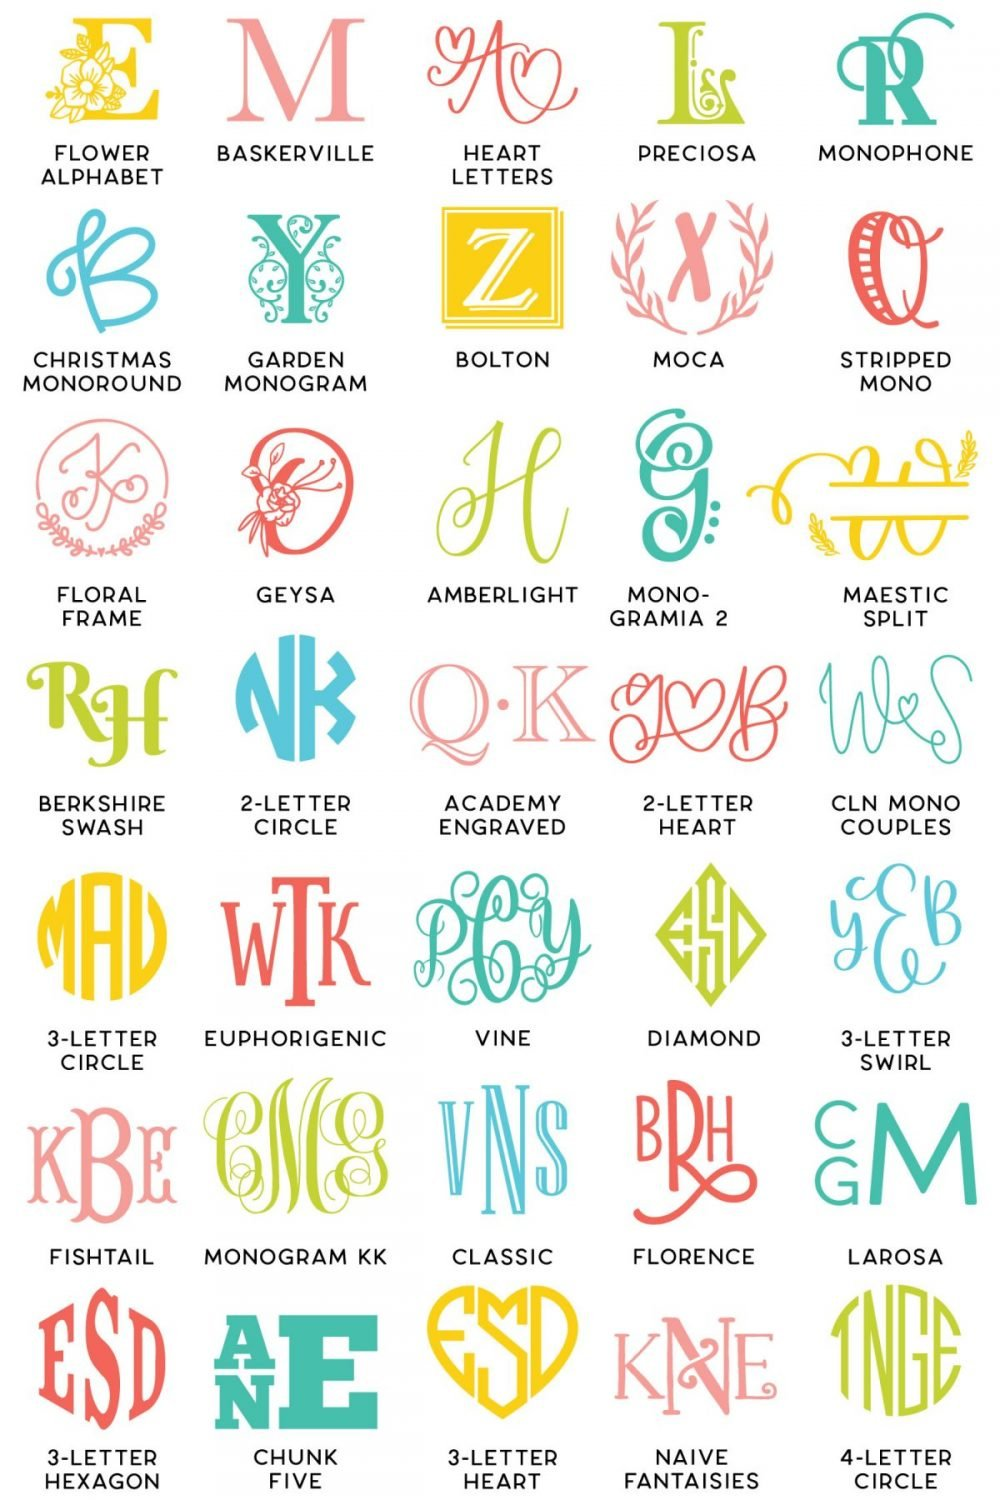 All the monogram fonts featured in this post